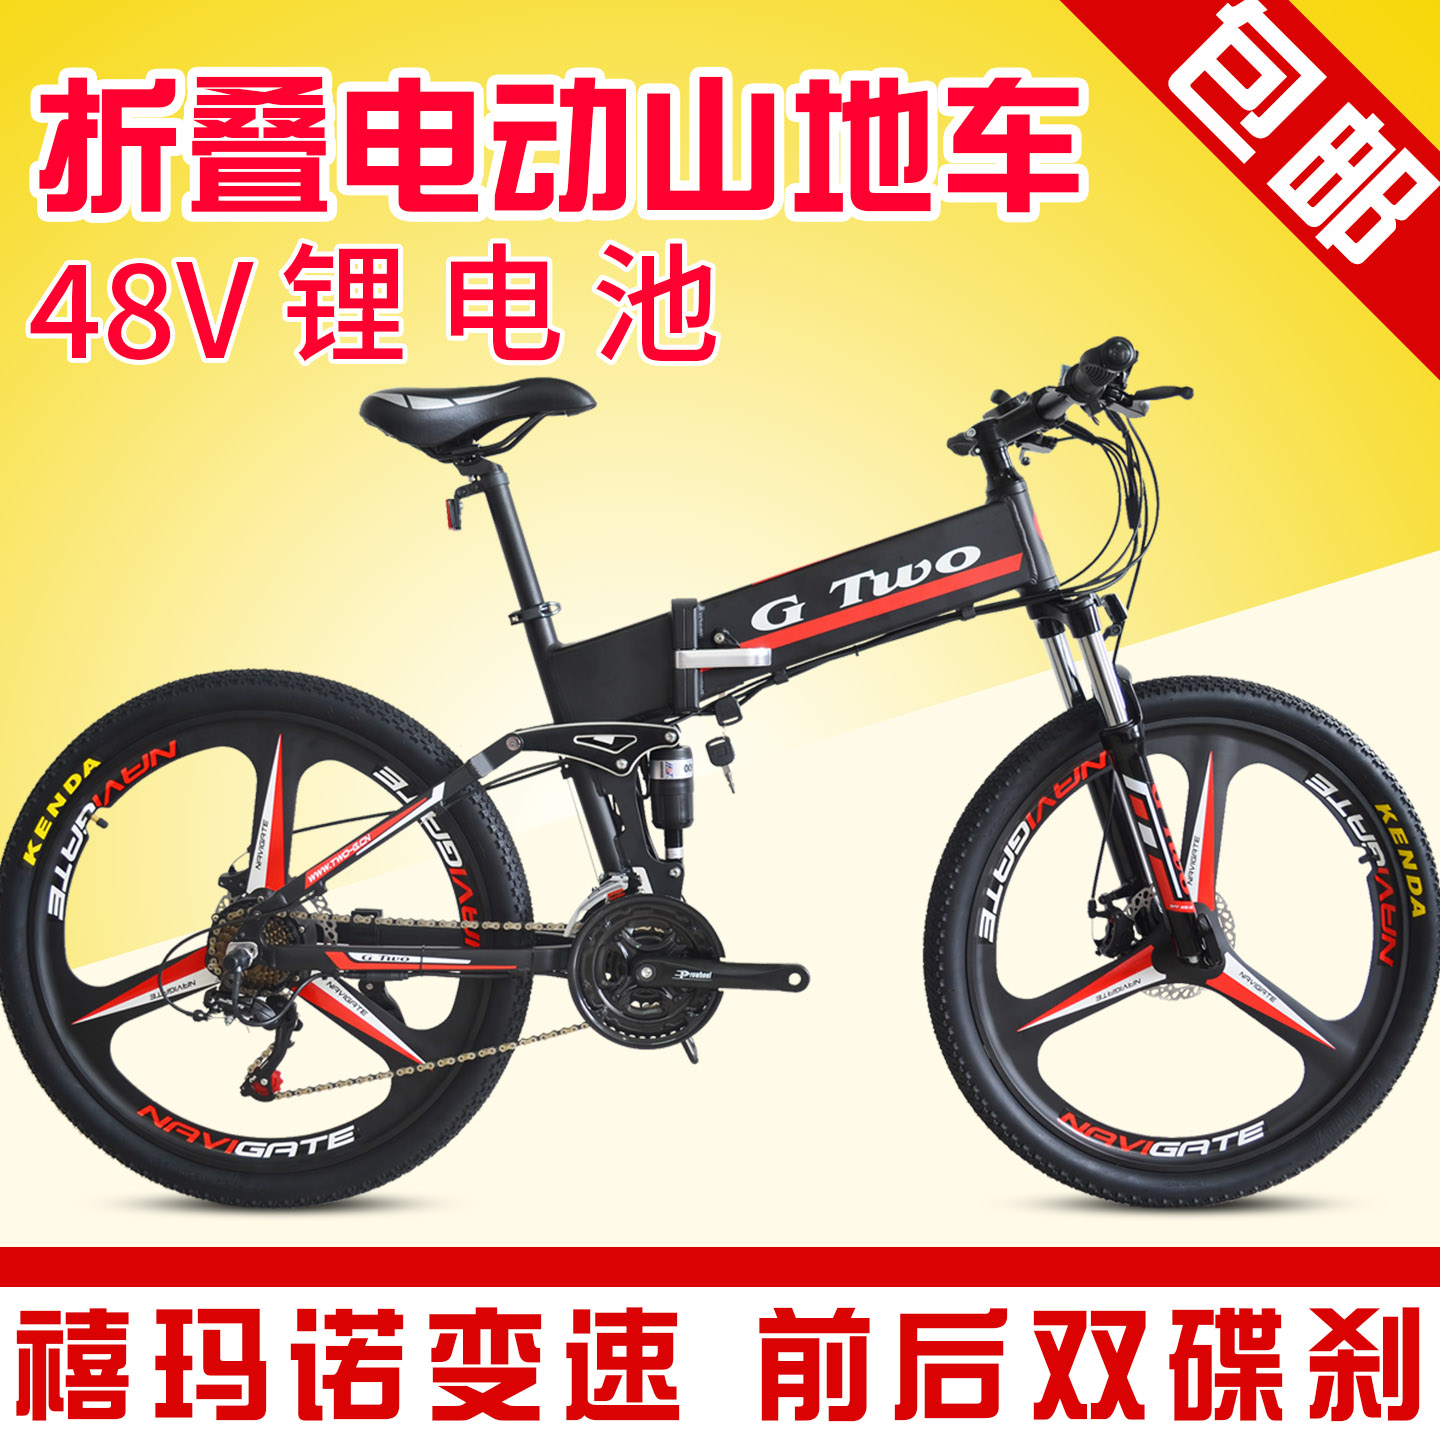 Folding electric mountain bike 48V lithium battery powered bicycle 26 inch adult one wheel variable speed bicycle